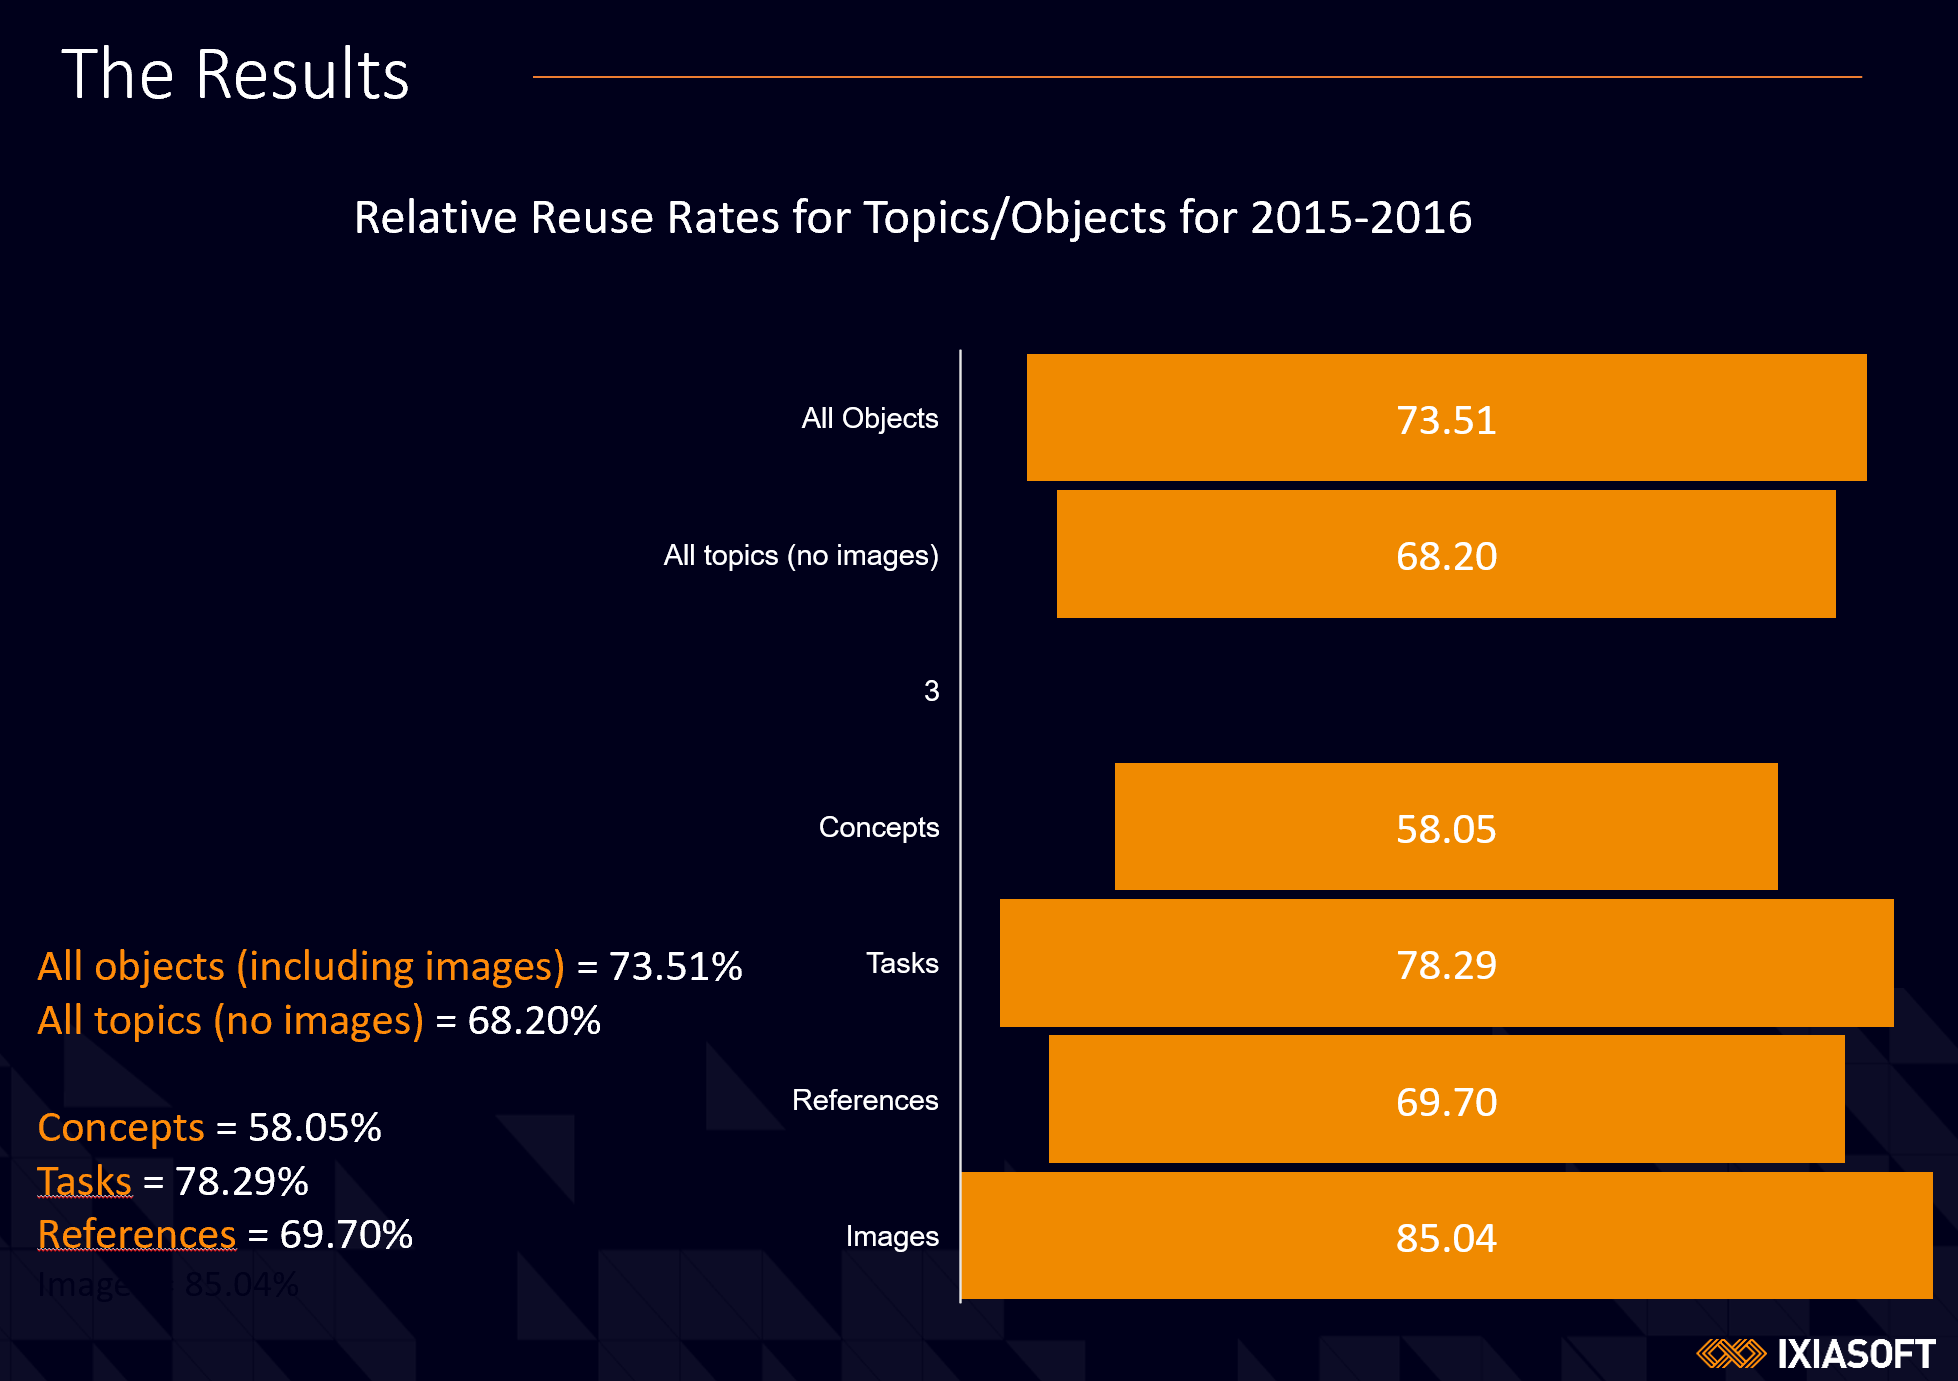 Relative Reuse Rates for Topics/Objects for 2015-2016 funnel chart